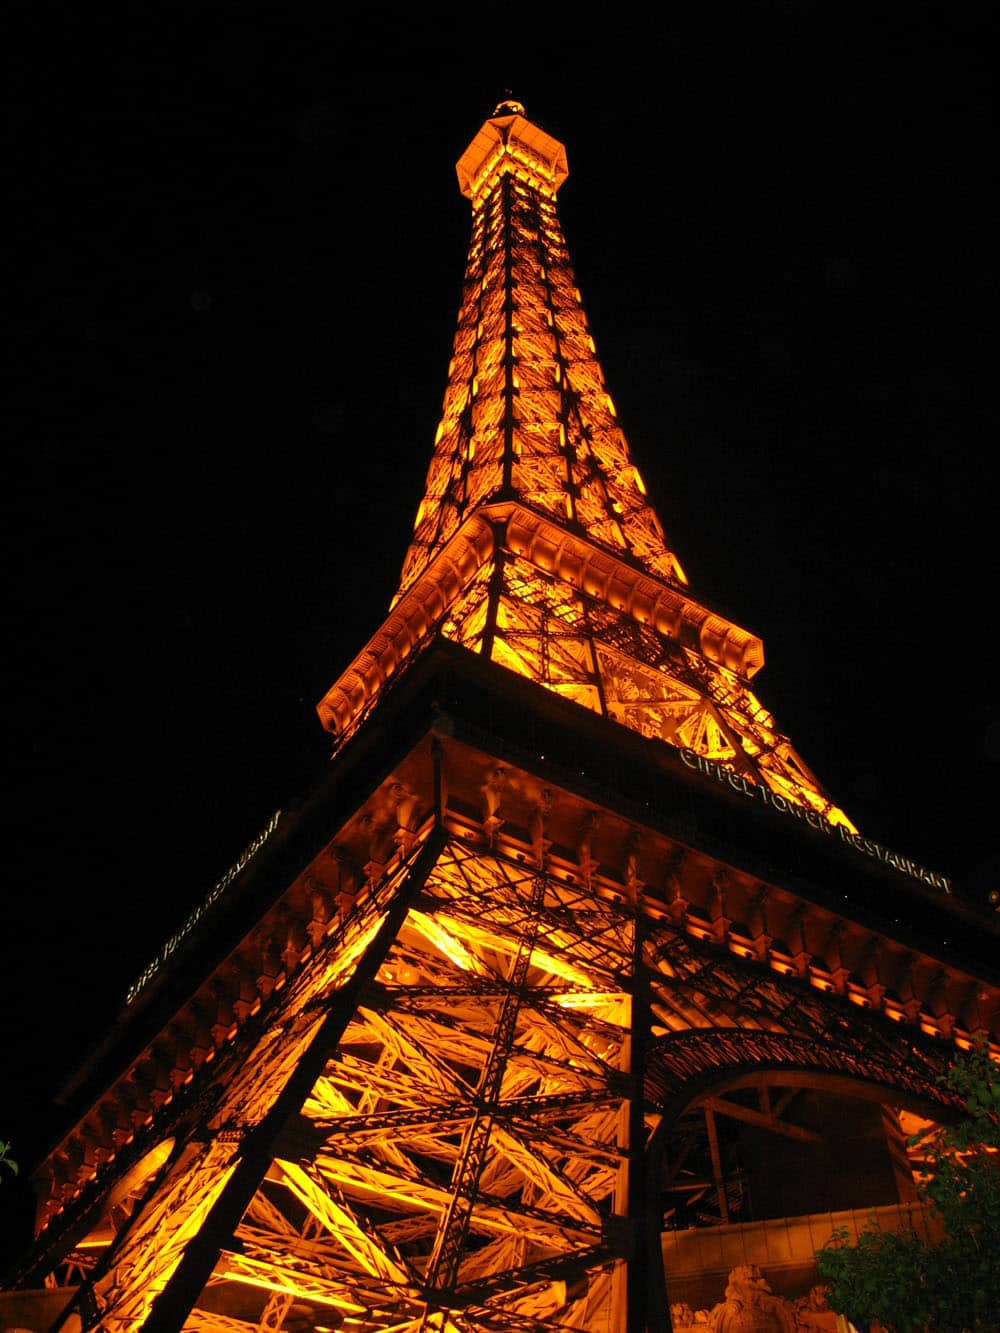 20 interesting facts about las vegas winter getaway if for Hotel close to eiffel tower paris